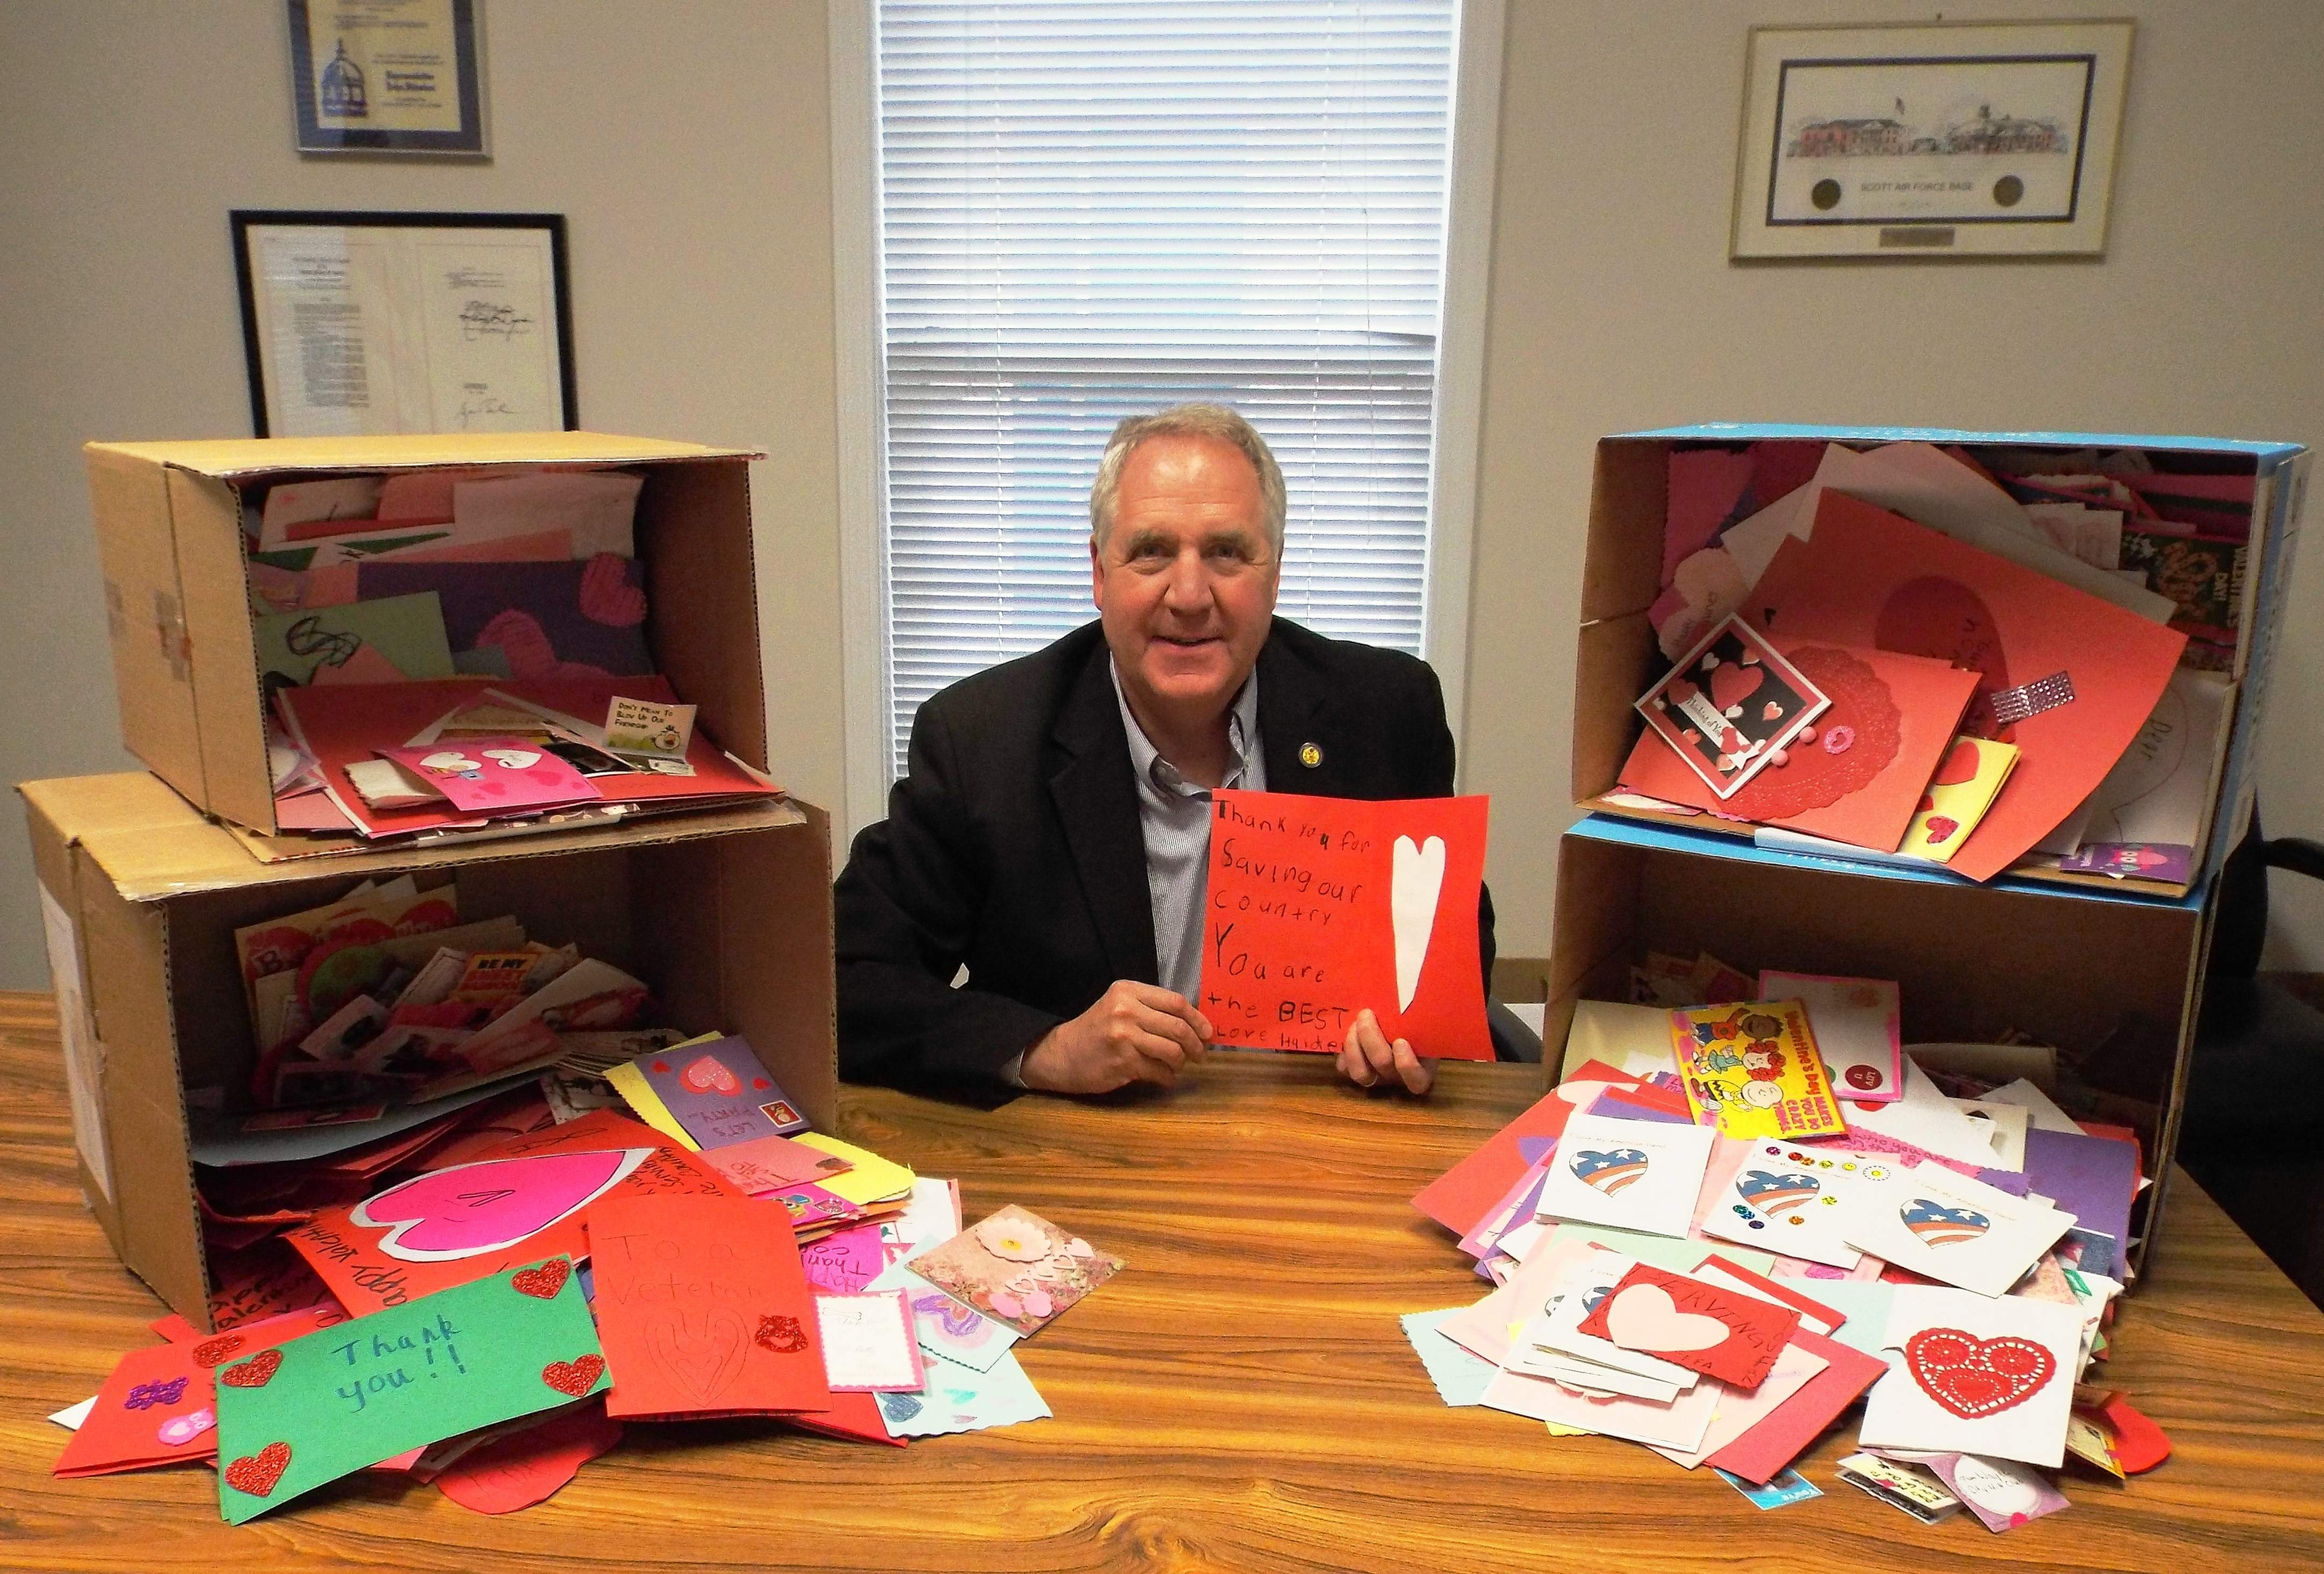 Congressman John Shimkus, R-Collinsville, shows off some of the valentines that were mailed in to veterans last year by residents of his district.